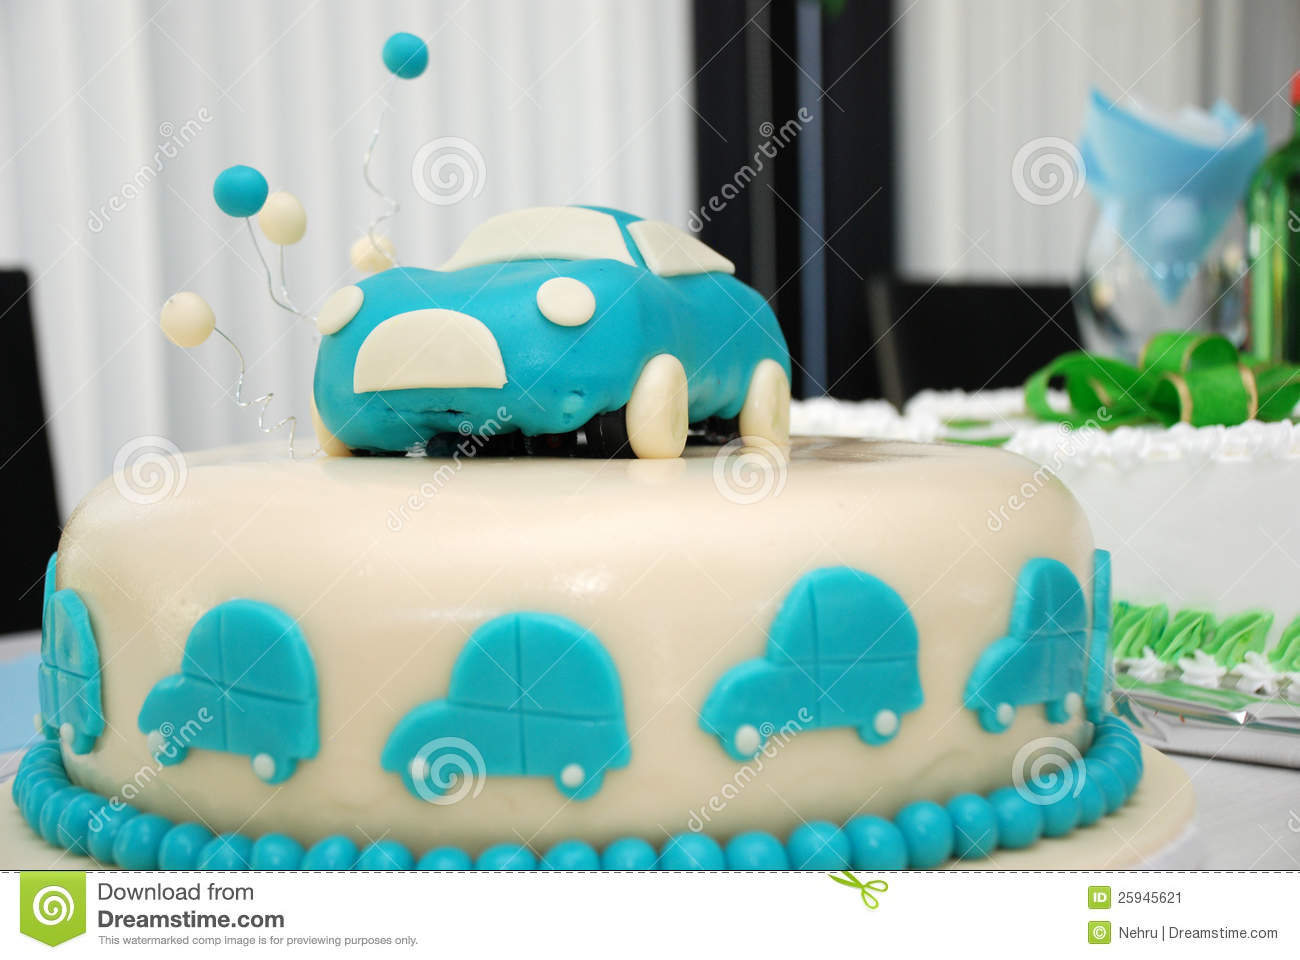 Bday Cake Designs For Baby Boy : Baby Boy Blue Birthday Cake With Car Stock Image - Image ...